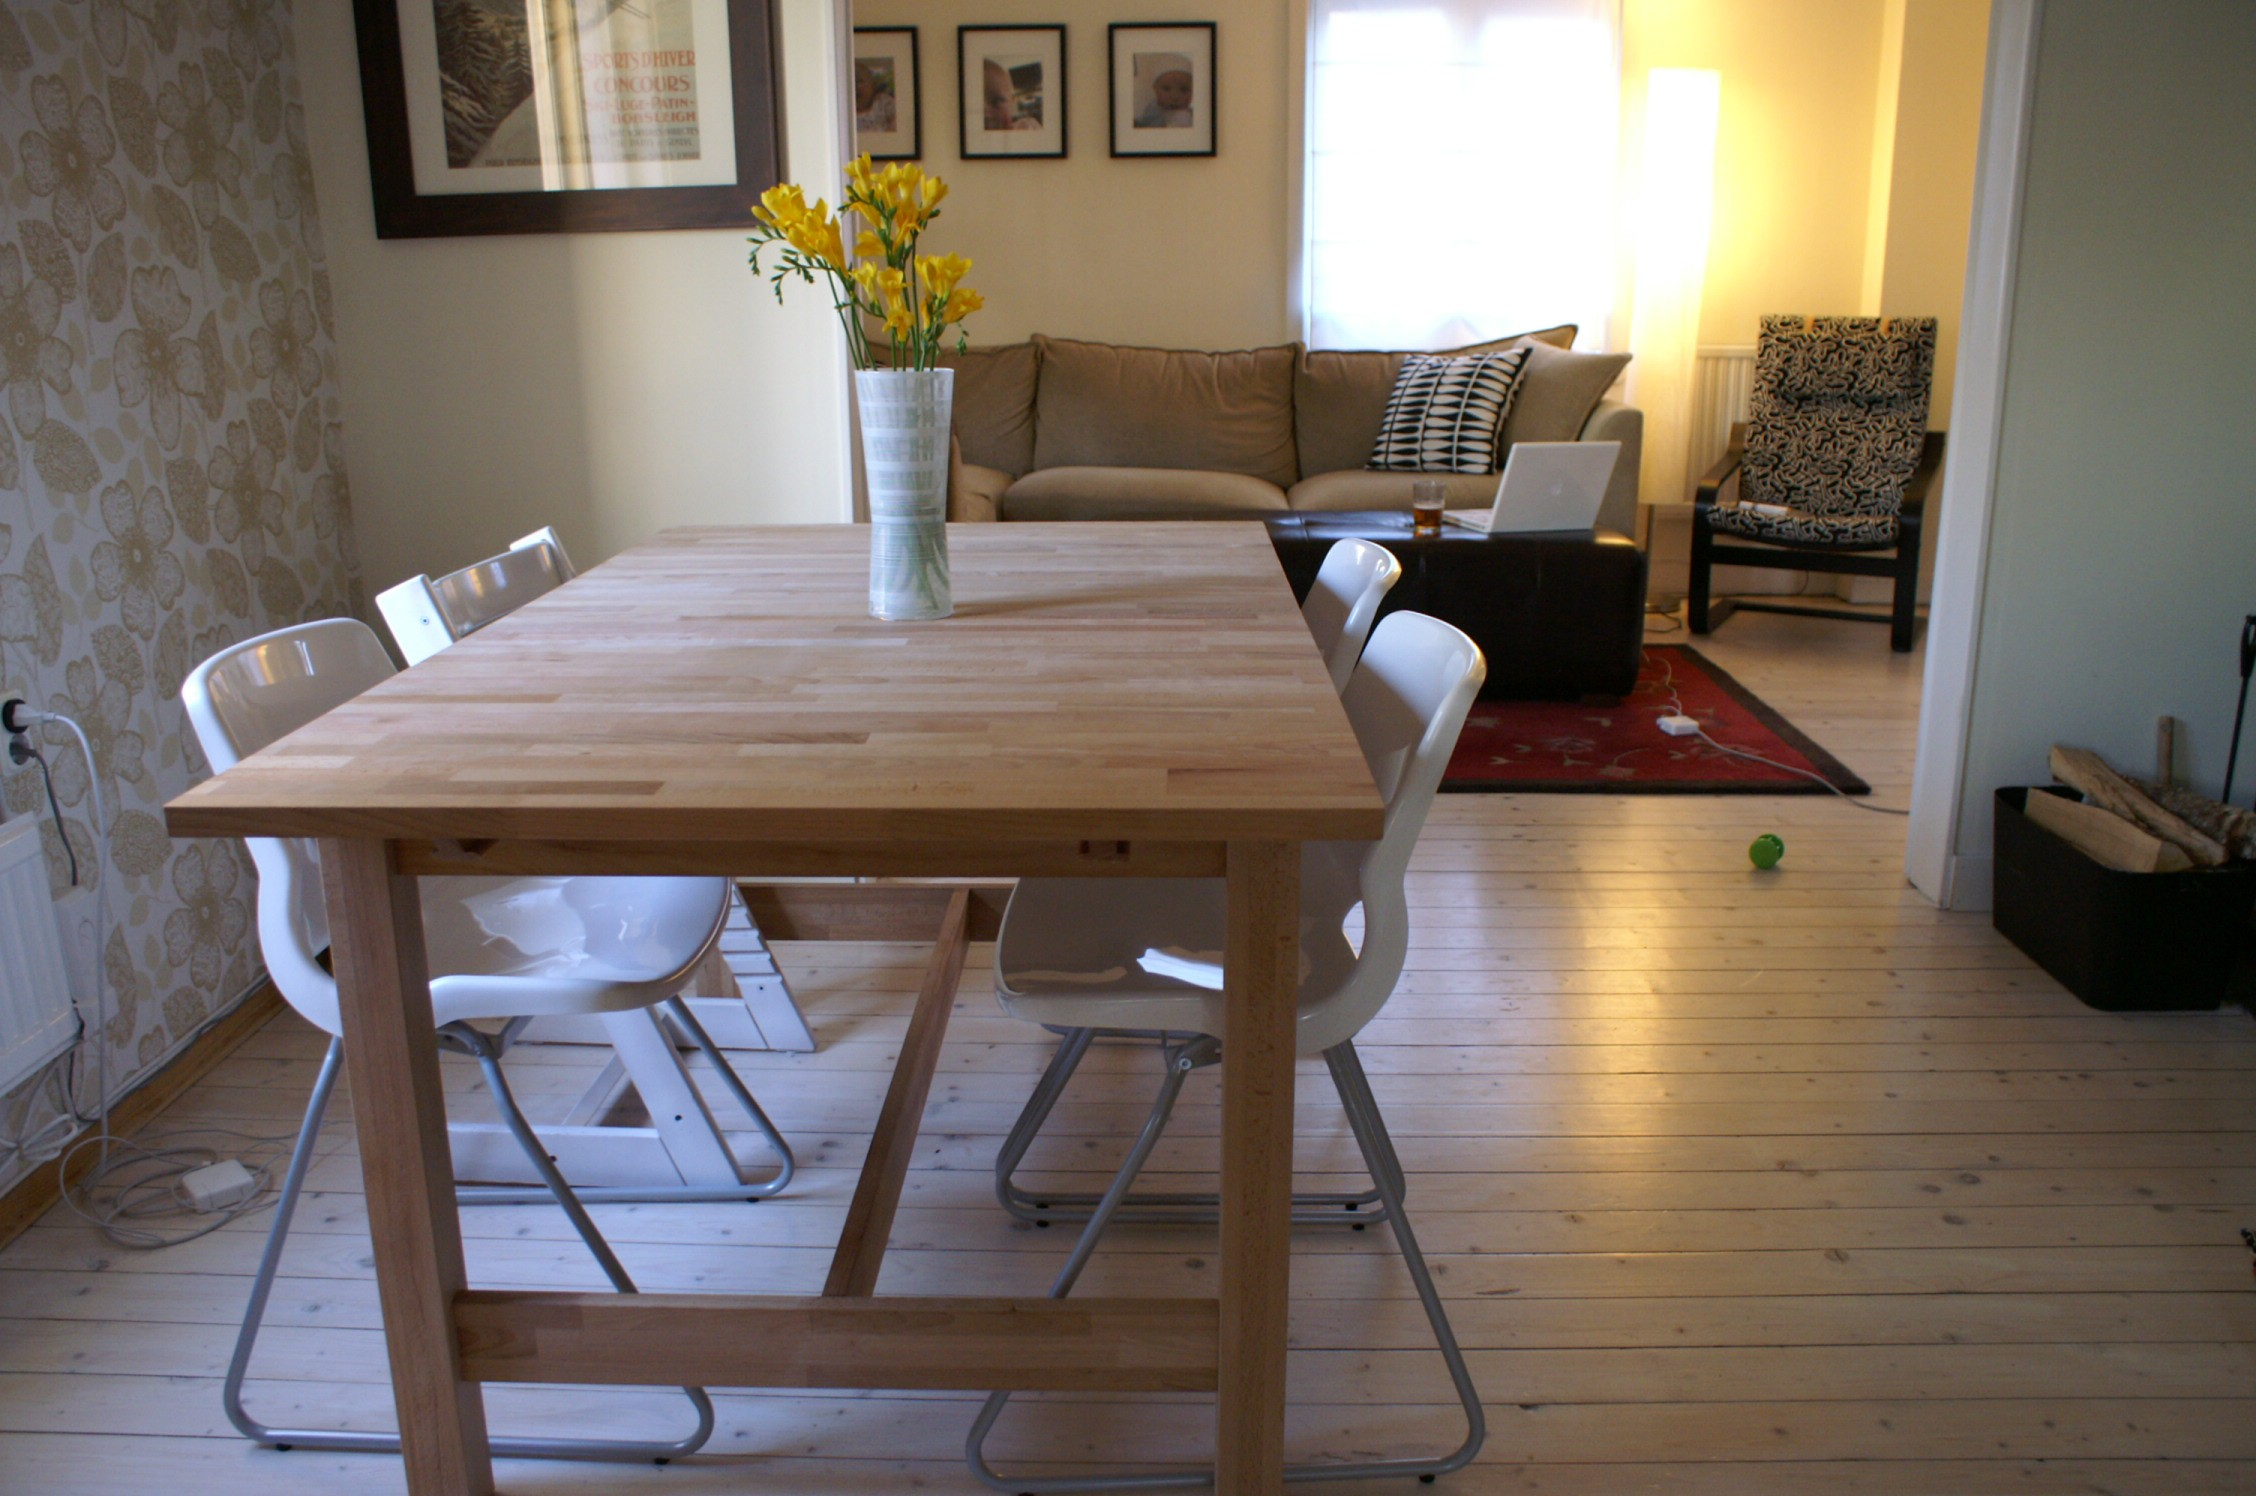 simple-design-ideas-of-ikea-dining-sets-with-brown-wooden-table-and-white-gloss-acrylic-chairs-with-metal-legs-as-well-as-dining-chairs-and-desk-chairs-ikea